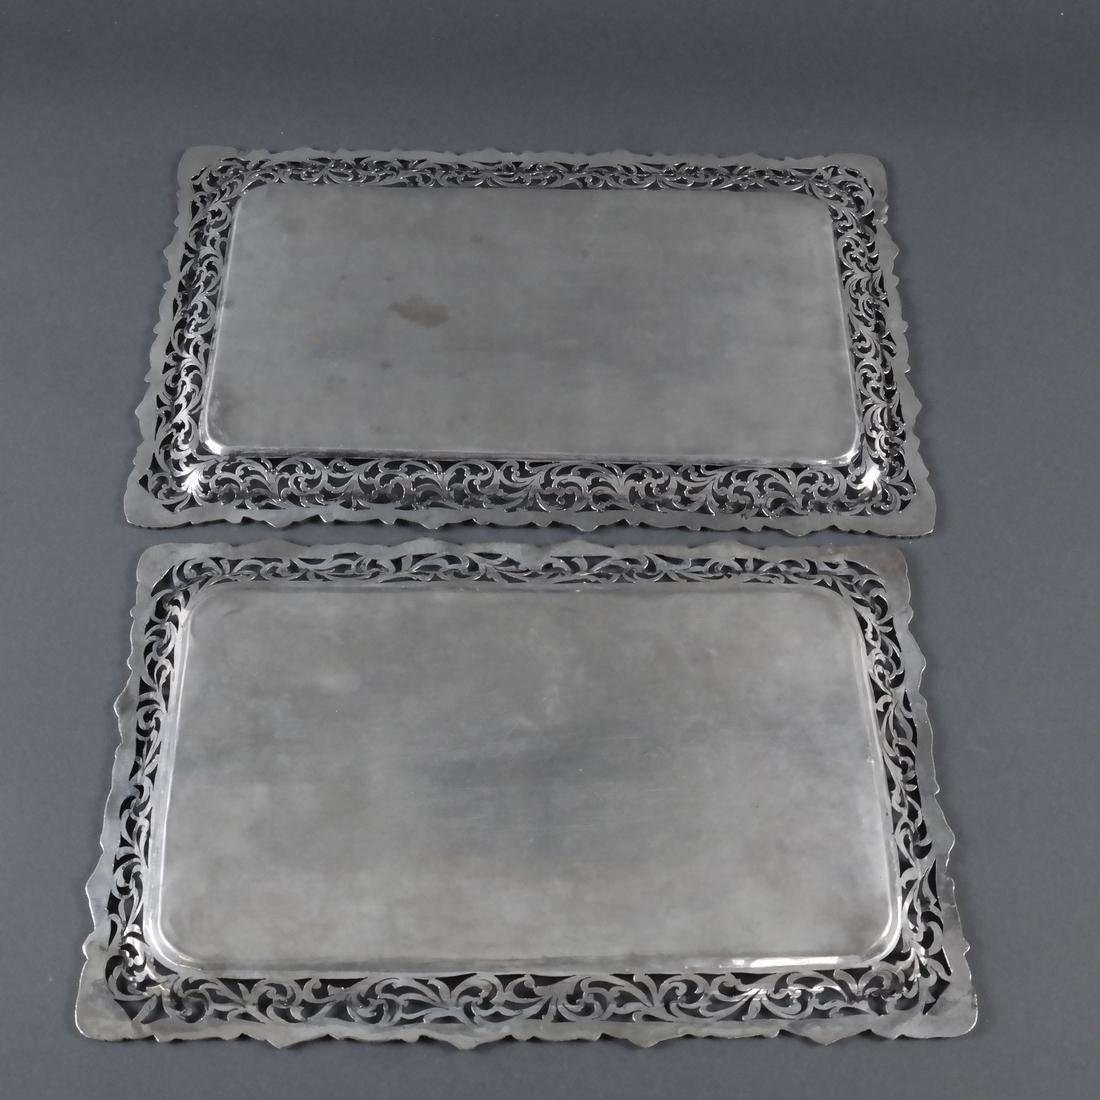 2 .800 Standard Silver Rectangular Trays - 6